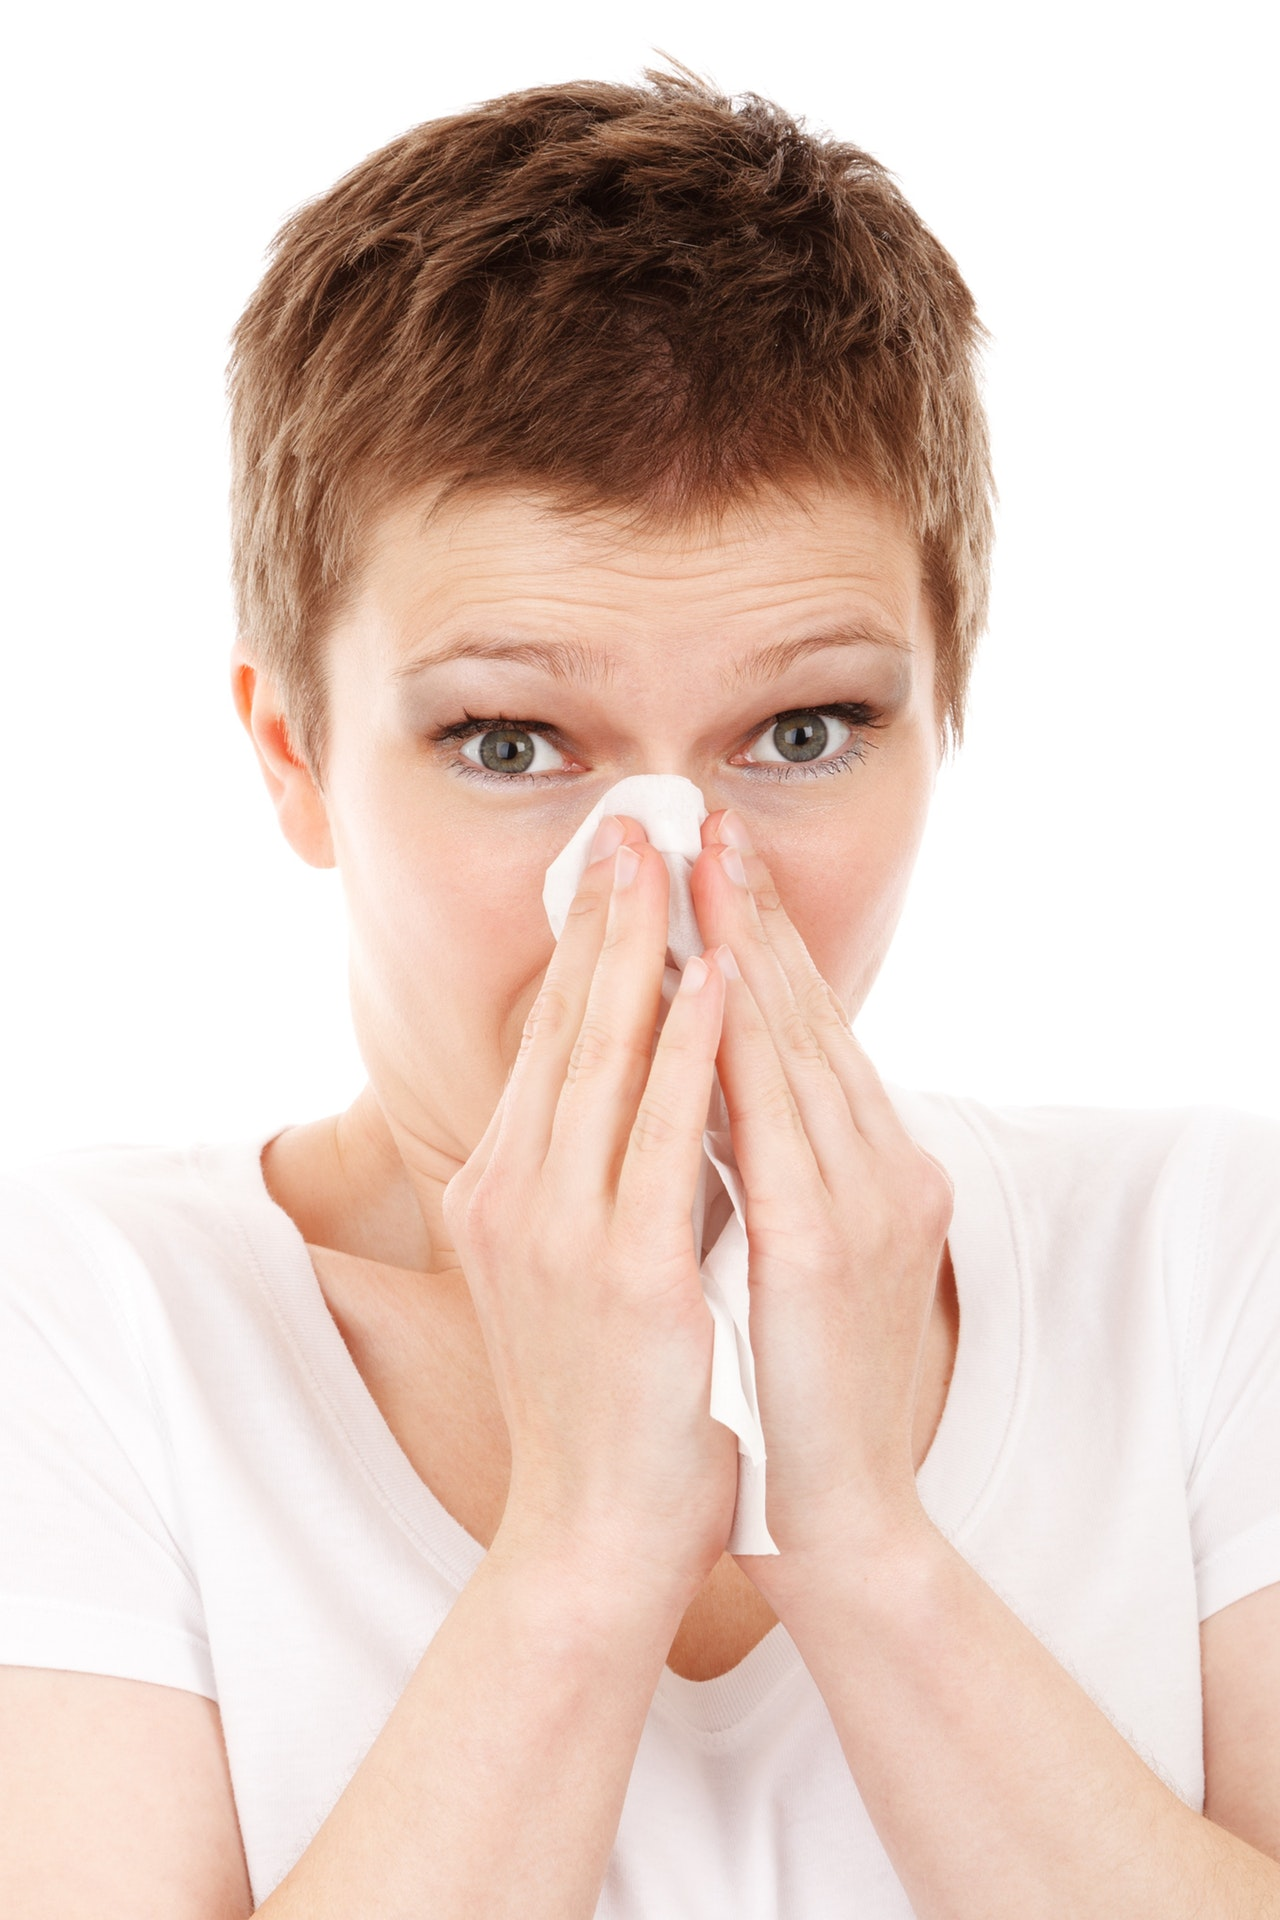 home solutions for runny nose